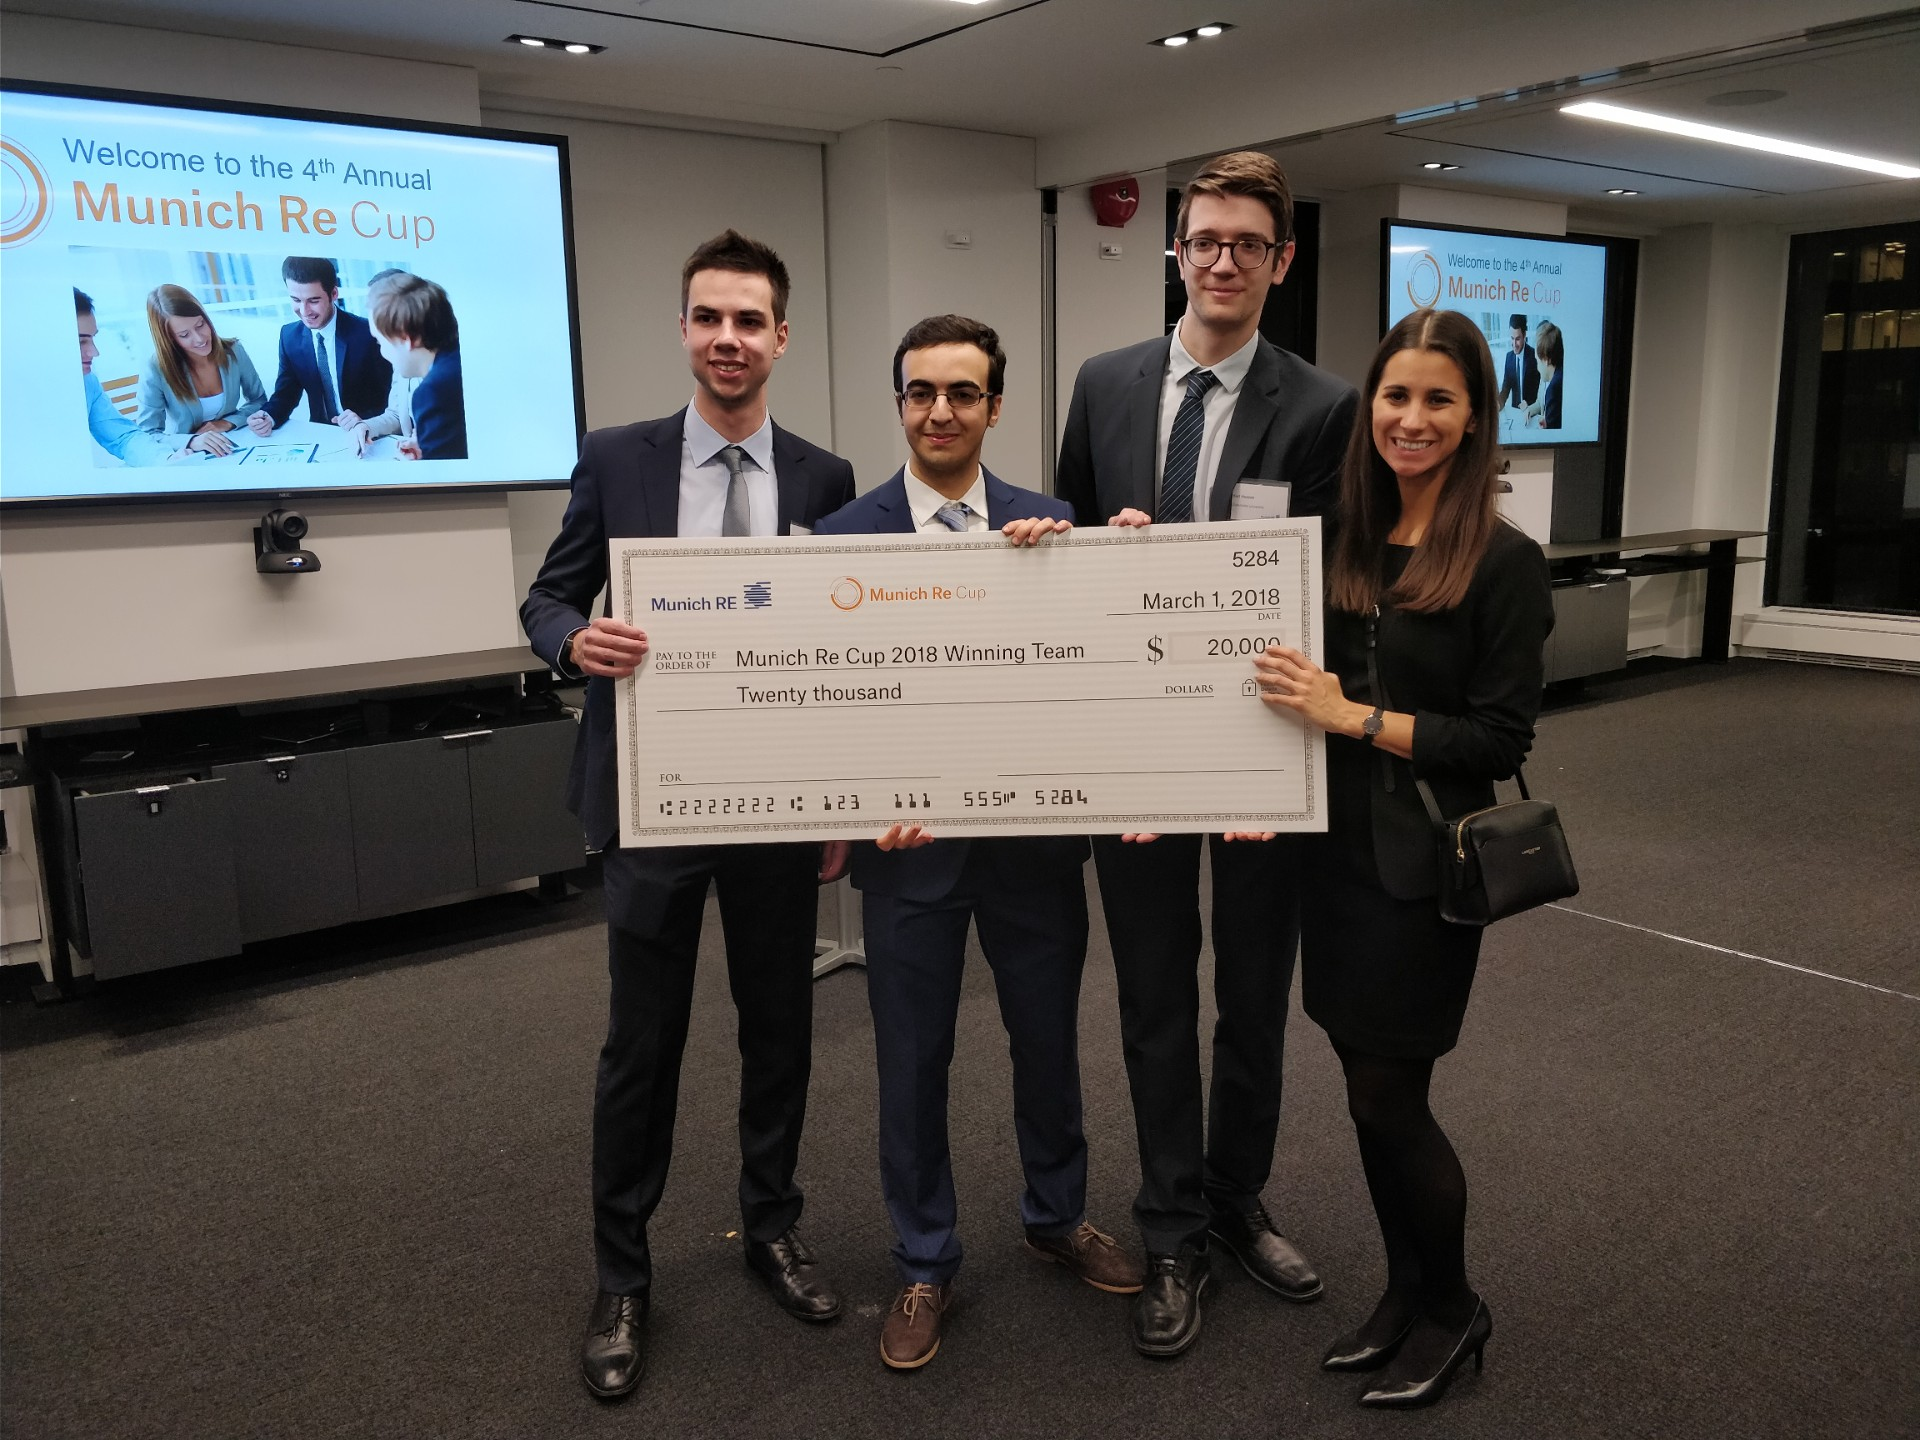 Math / Stats wins big in national actuarial case competition